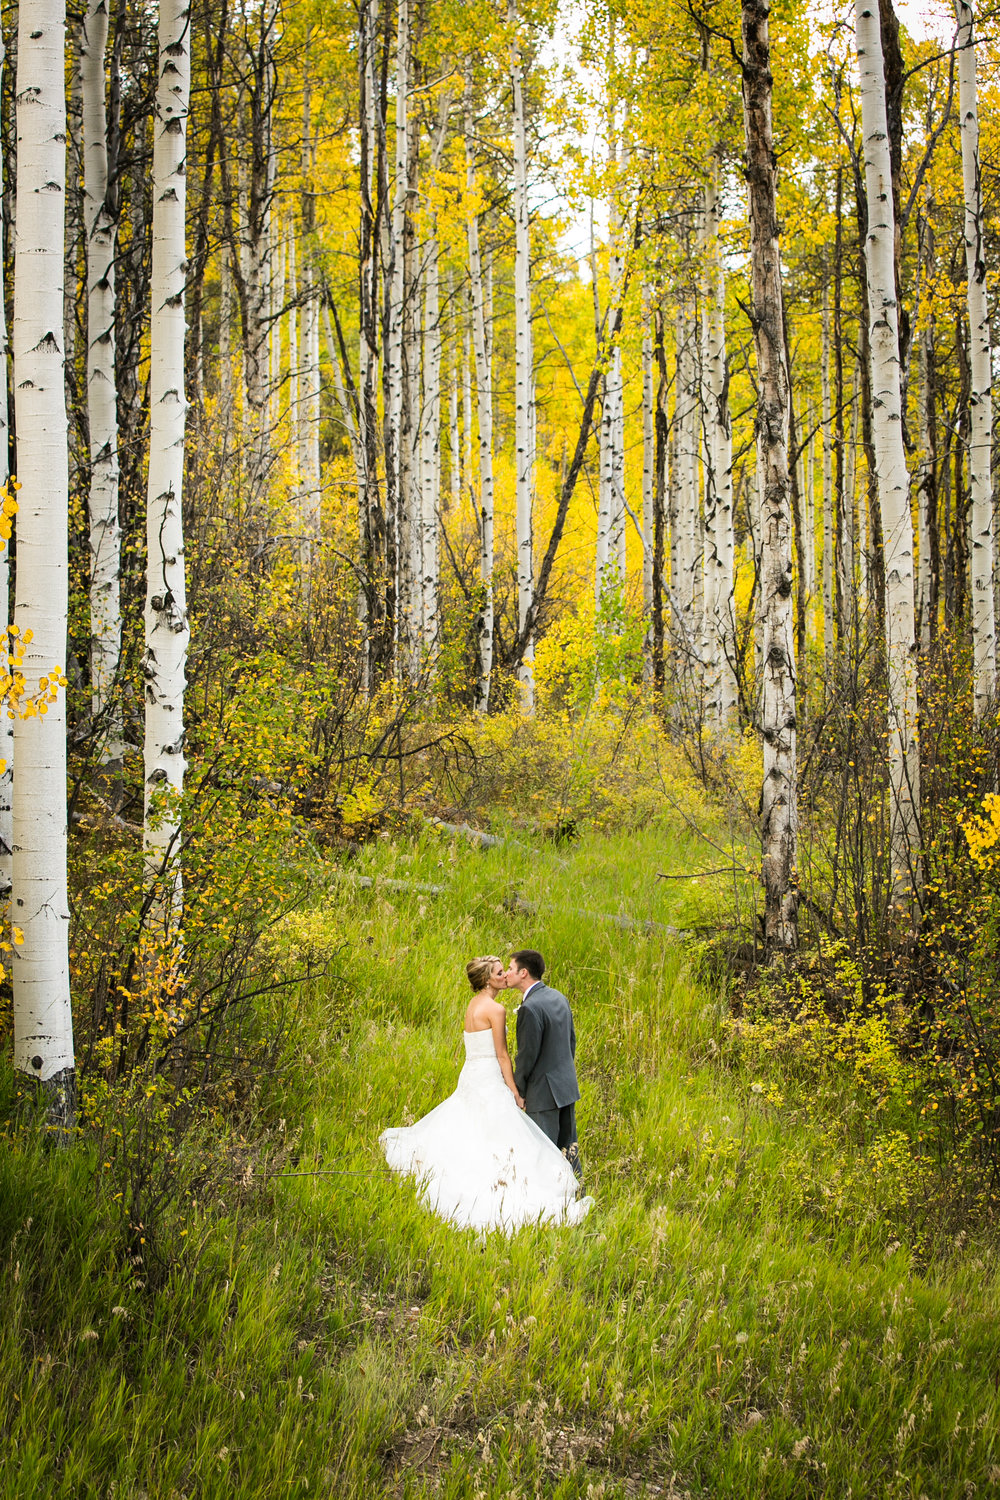 Vail-wedding-photography-packages-axelphoto.jpg